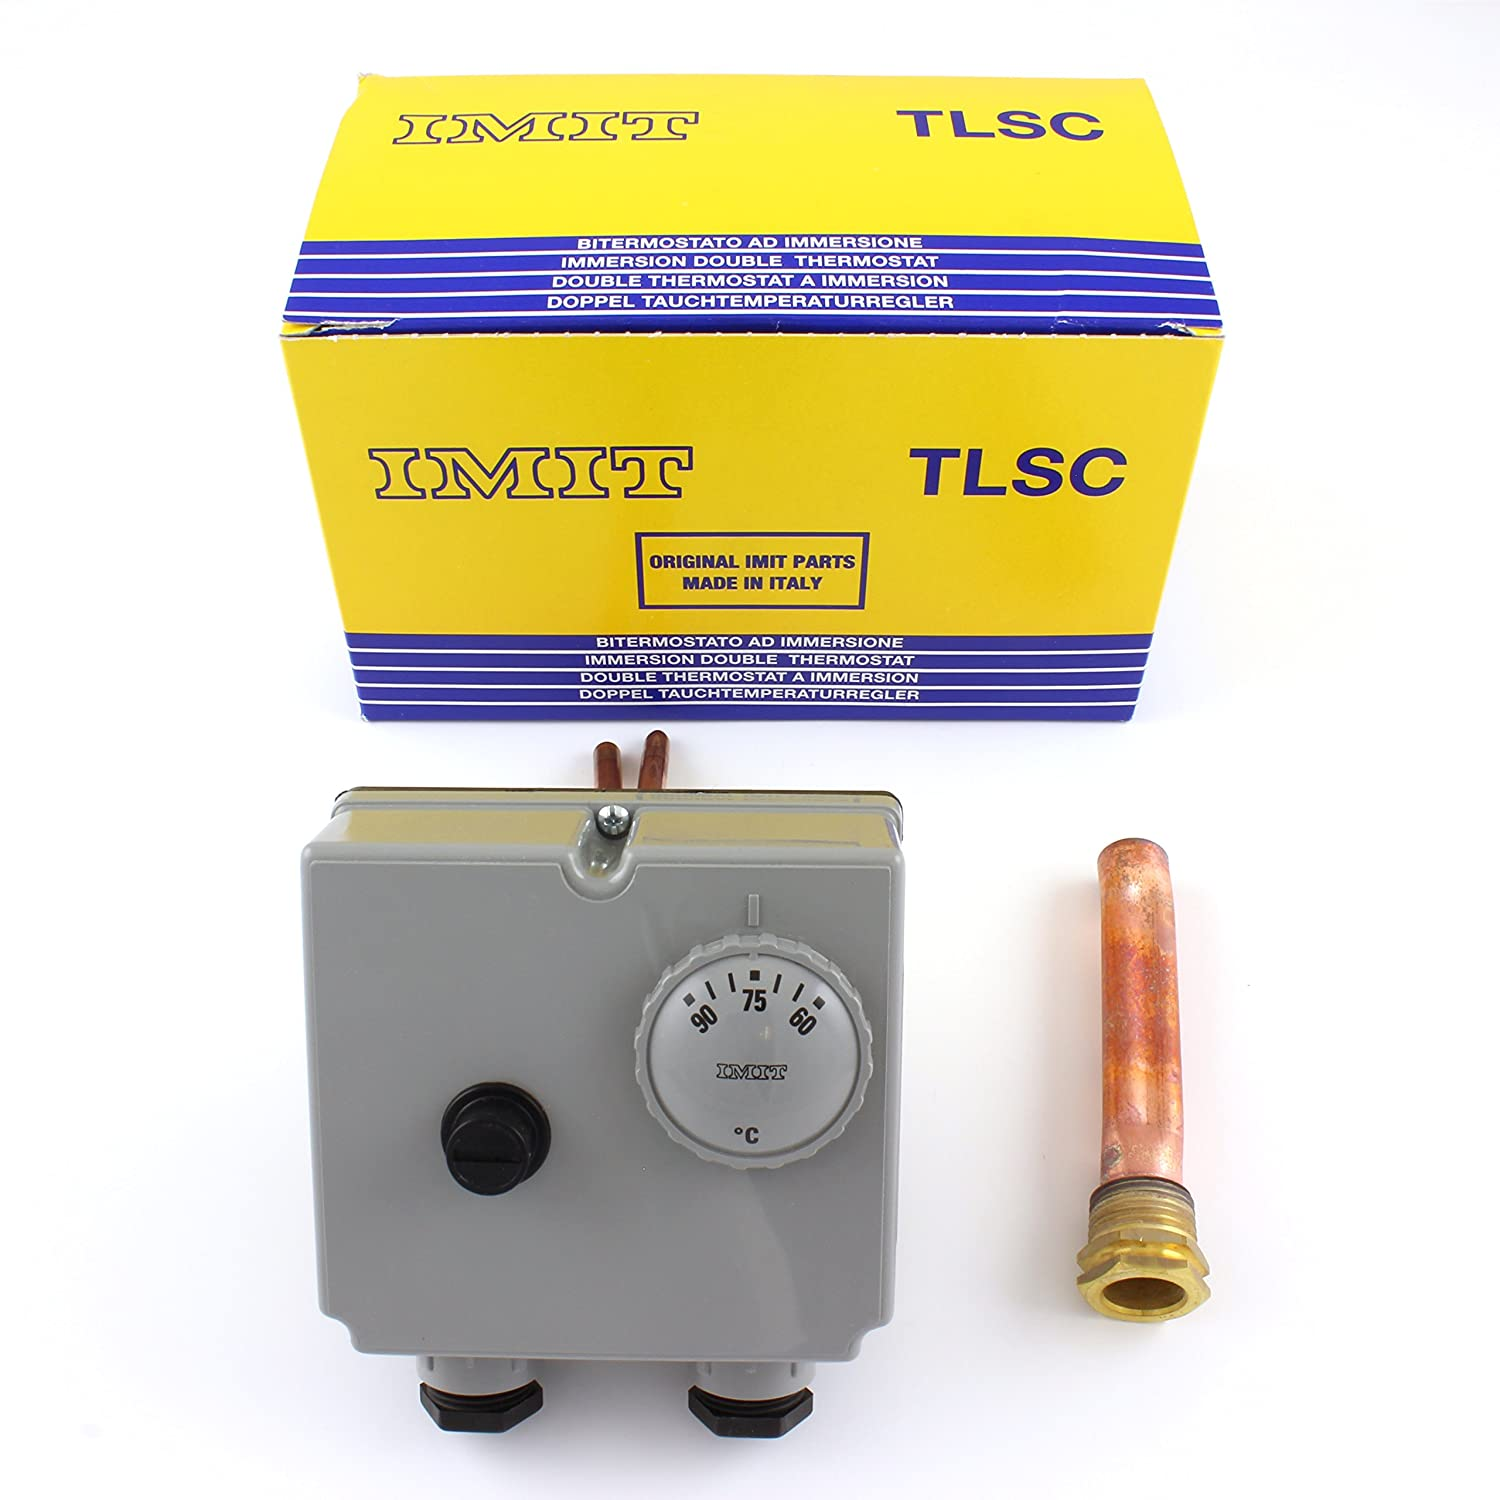 IMIT TLSC 07050 542816 adjustable (60 - 90 Degrees °C) Dual Immersion Imit Boiler Thermostat Wiring Diagram on